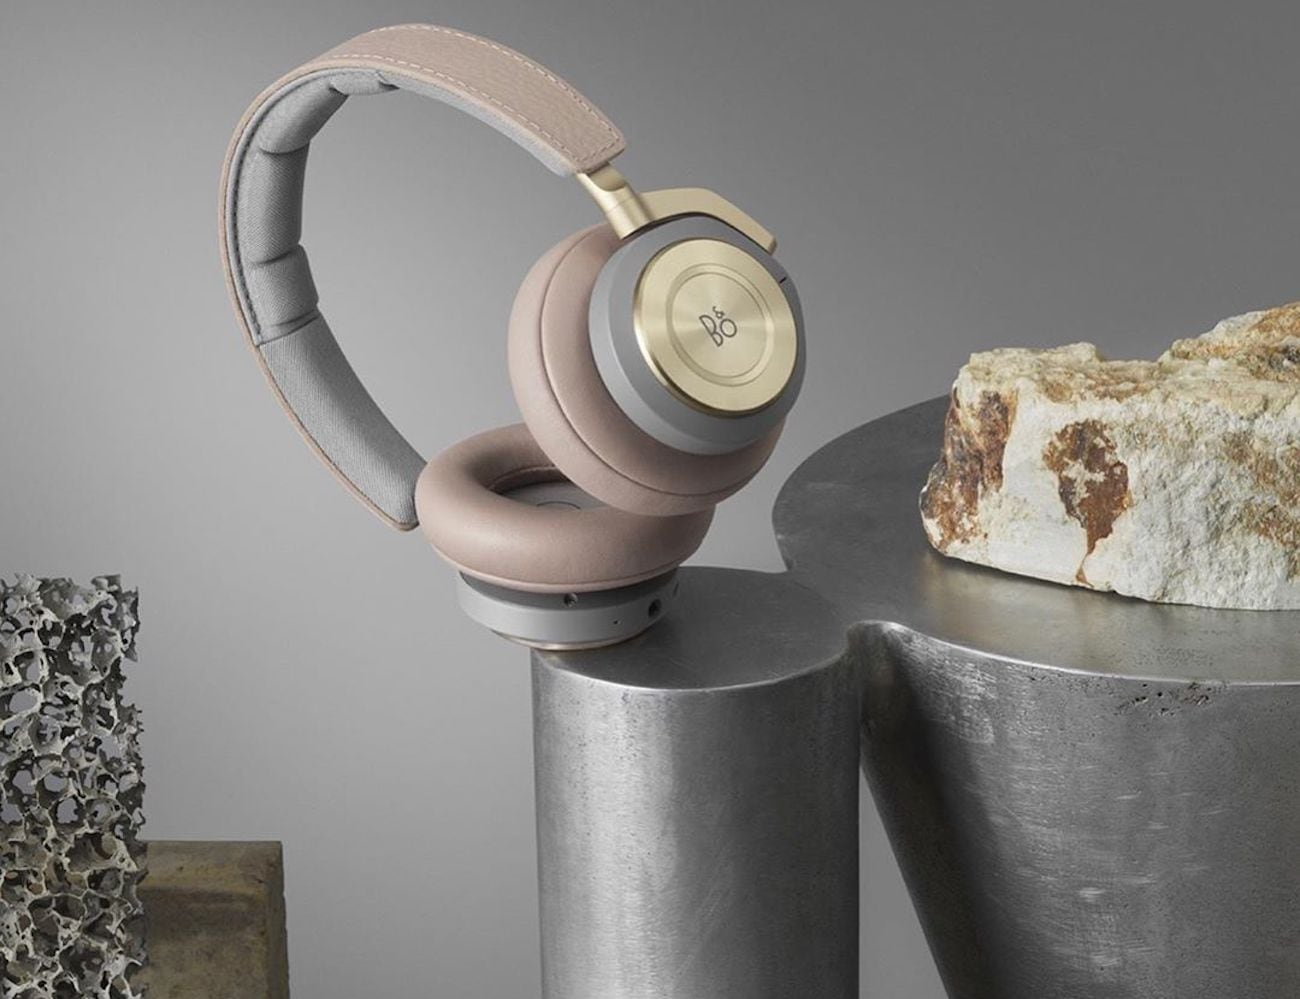 Bang & Olufsen Beoplay H9 Touch-Interface Headphones let you quickly adjust your music